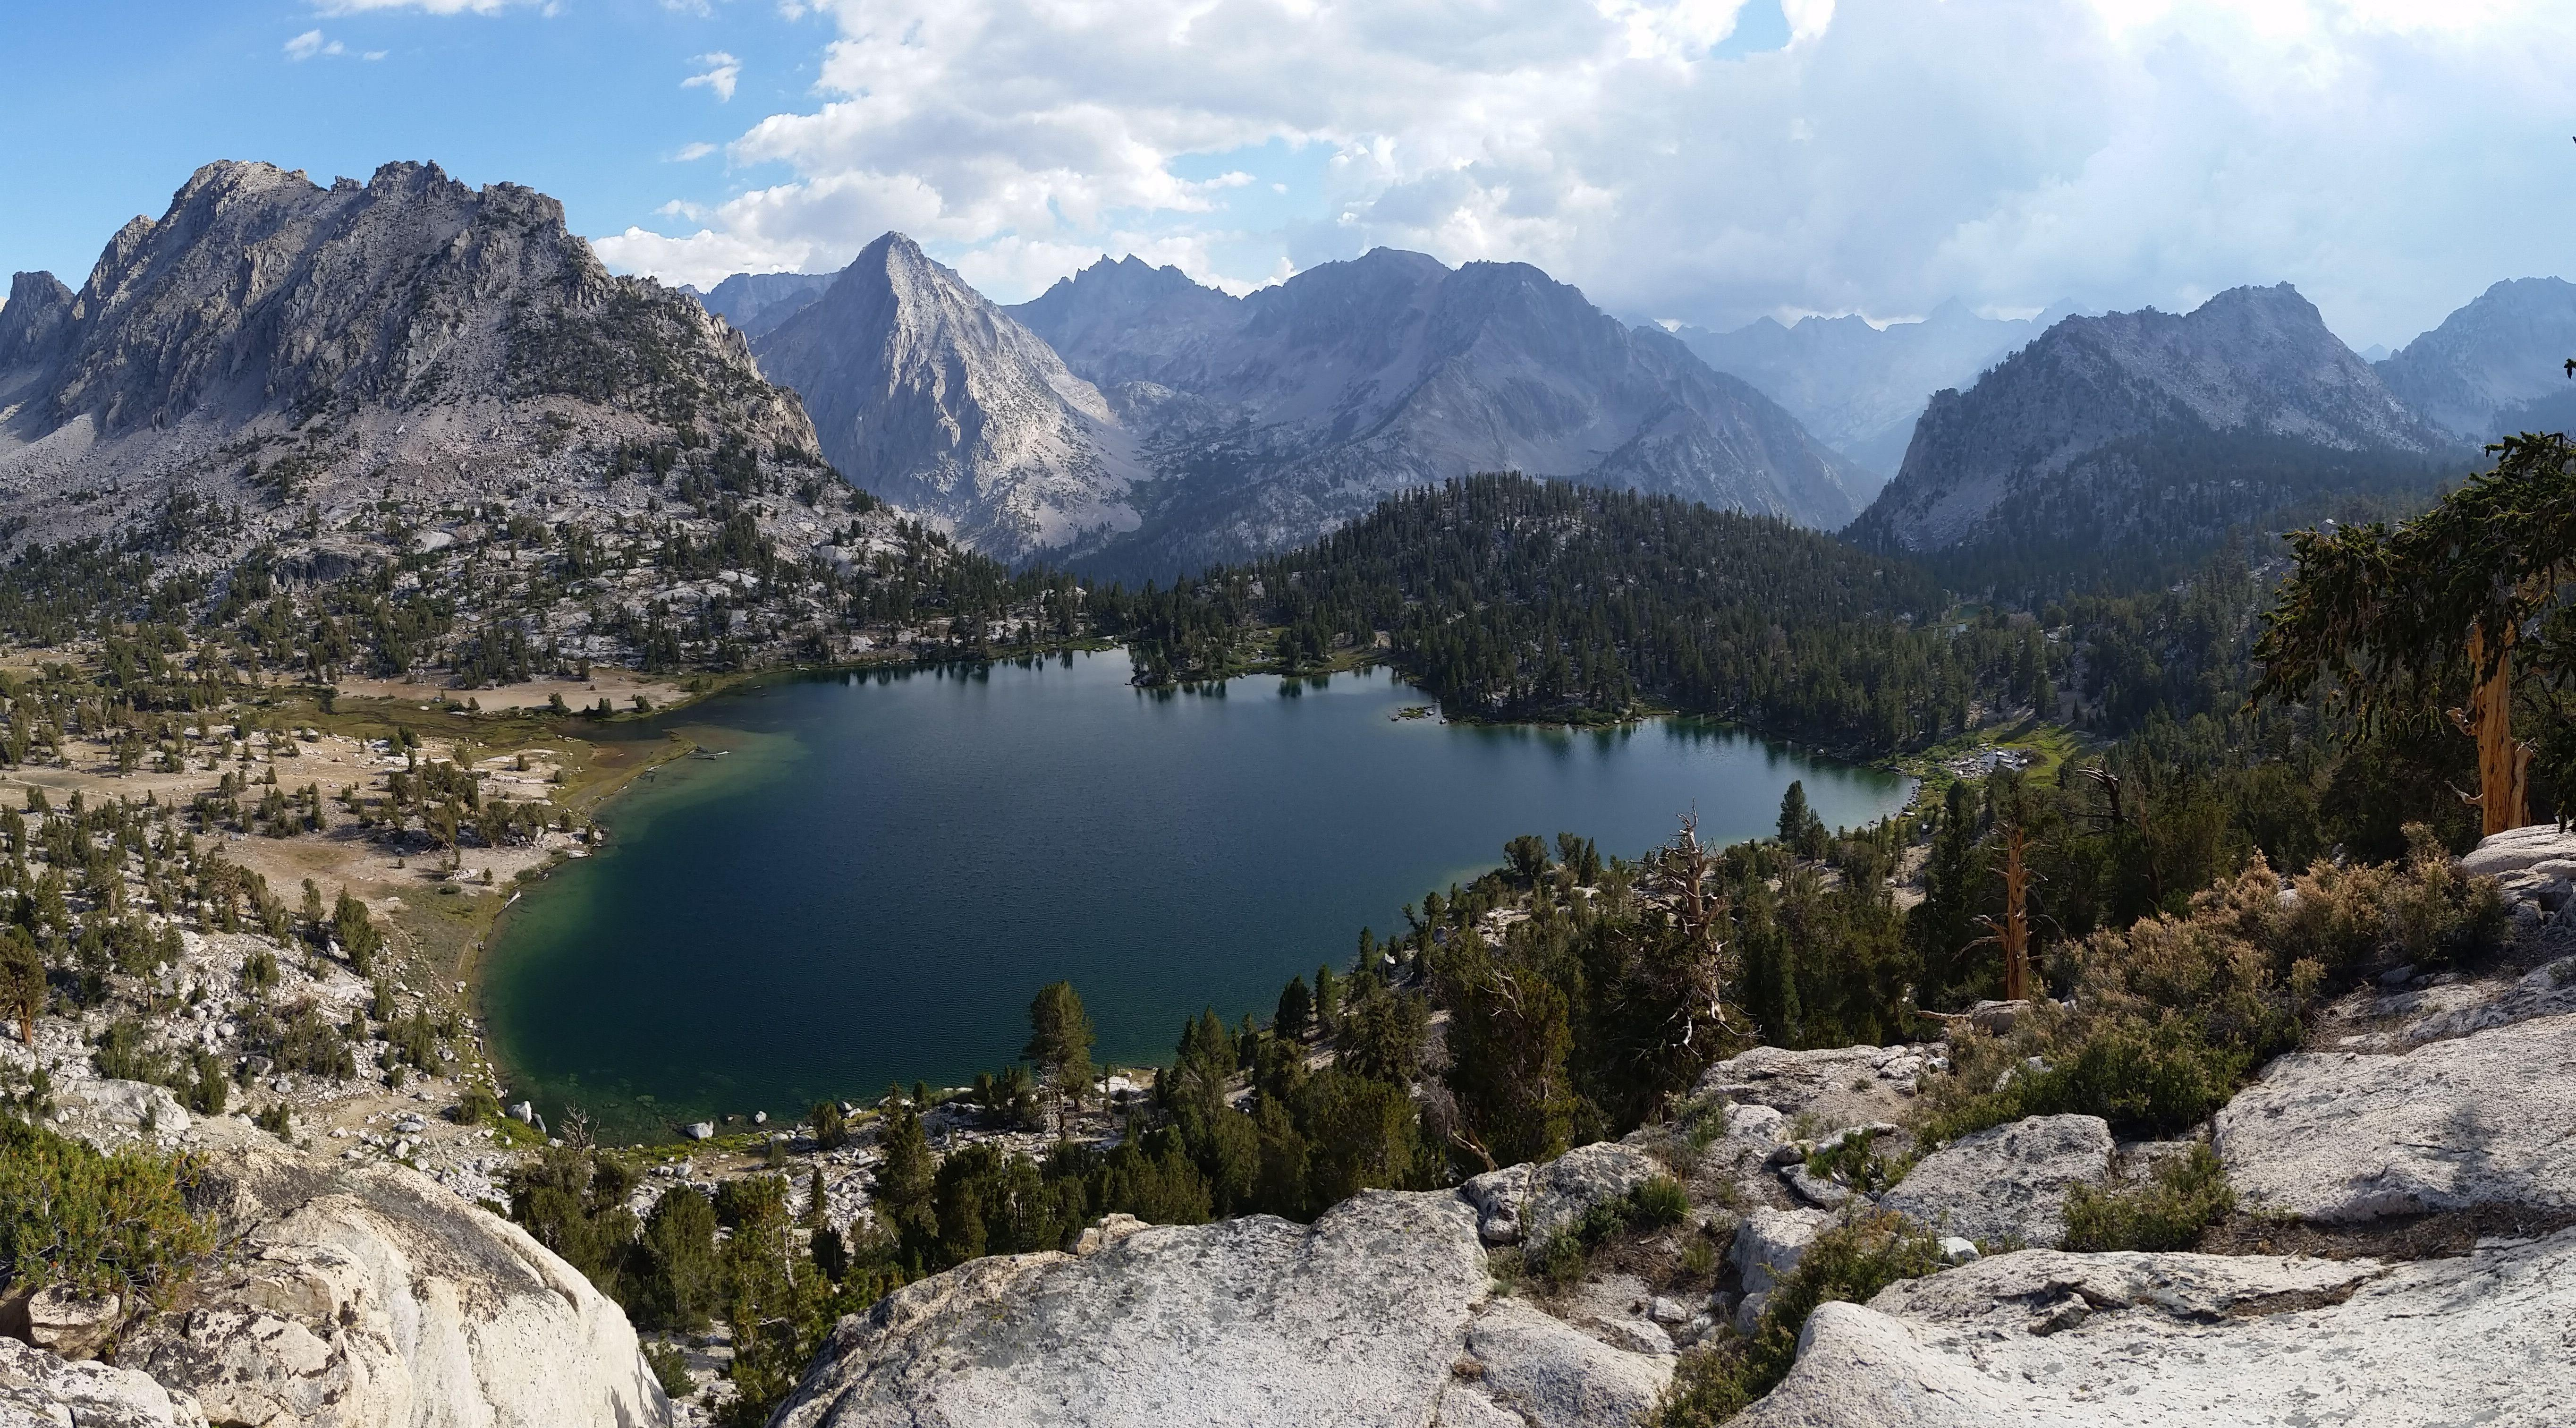 High Quality Kings Canyon National Park Wallpapers